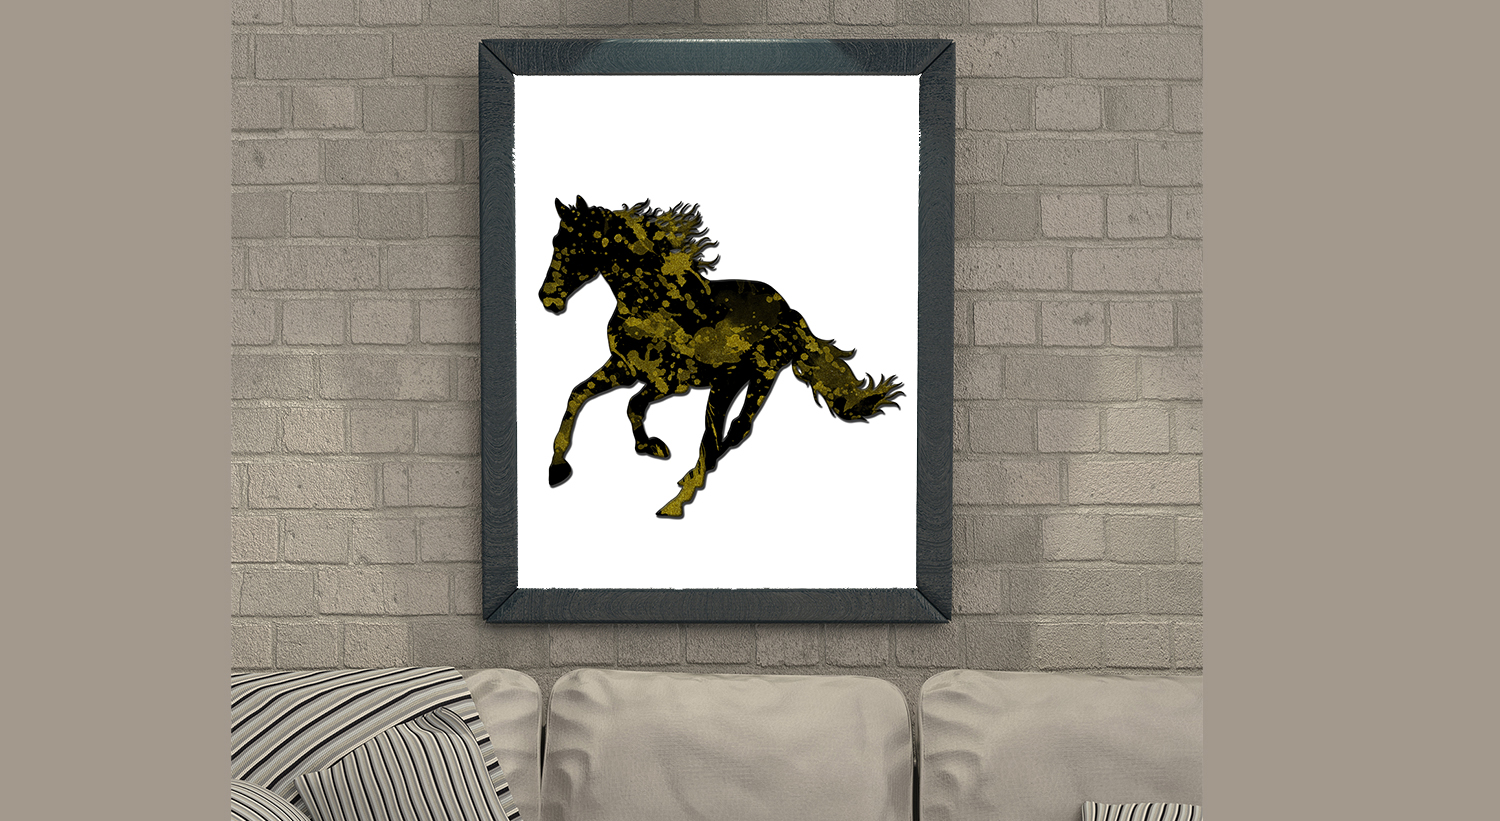 Horse Wall Art   Size 24x36 Inches   High Resolution (300 Dpi)   (